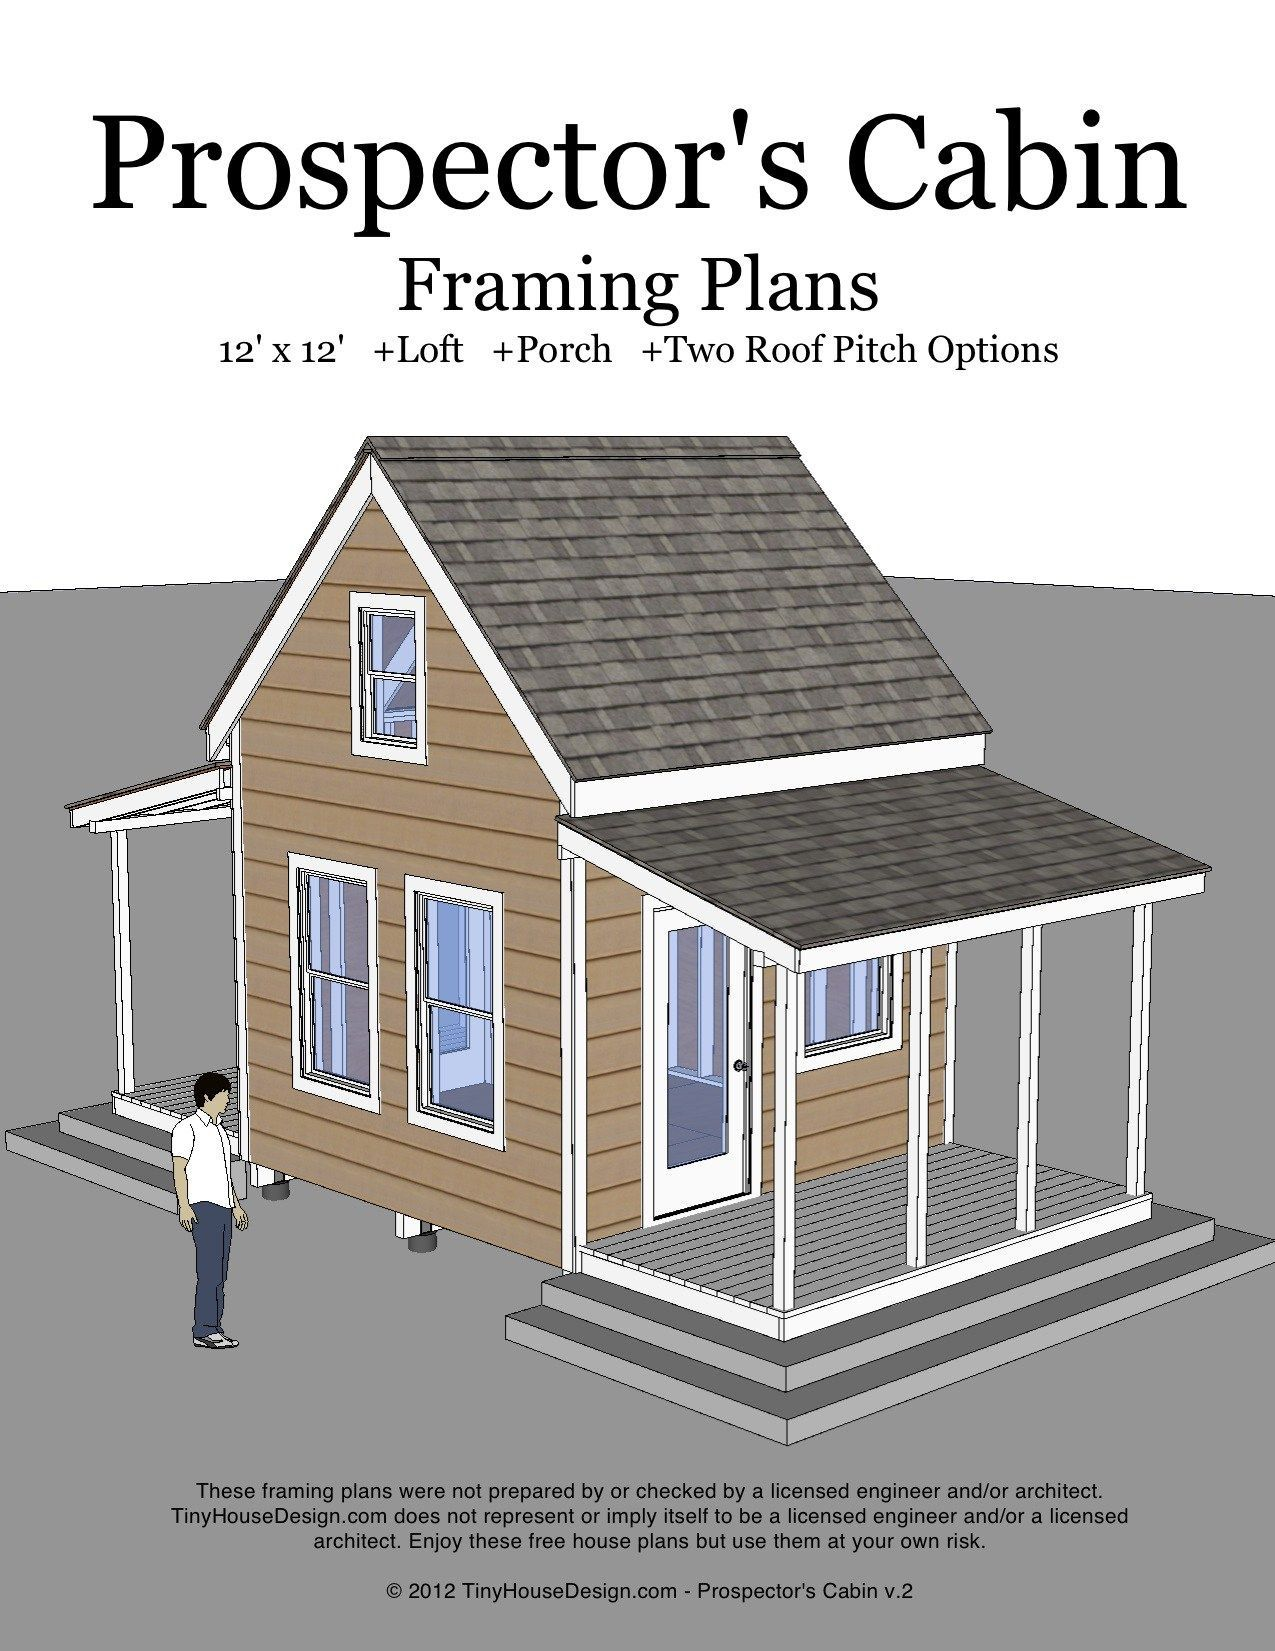 Ryan Shed Plans 12 000 Shed Plans And Designs For Easy Shed Building Ryanshedplans Tiny House Plans Cabin Plans With Loft Free House Plans